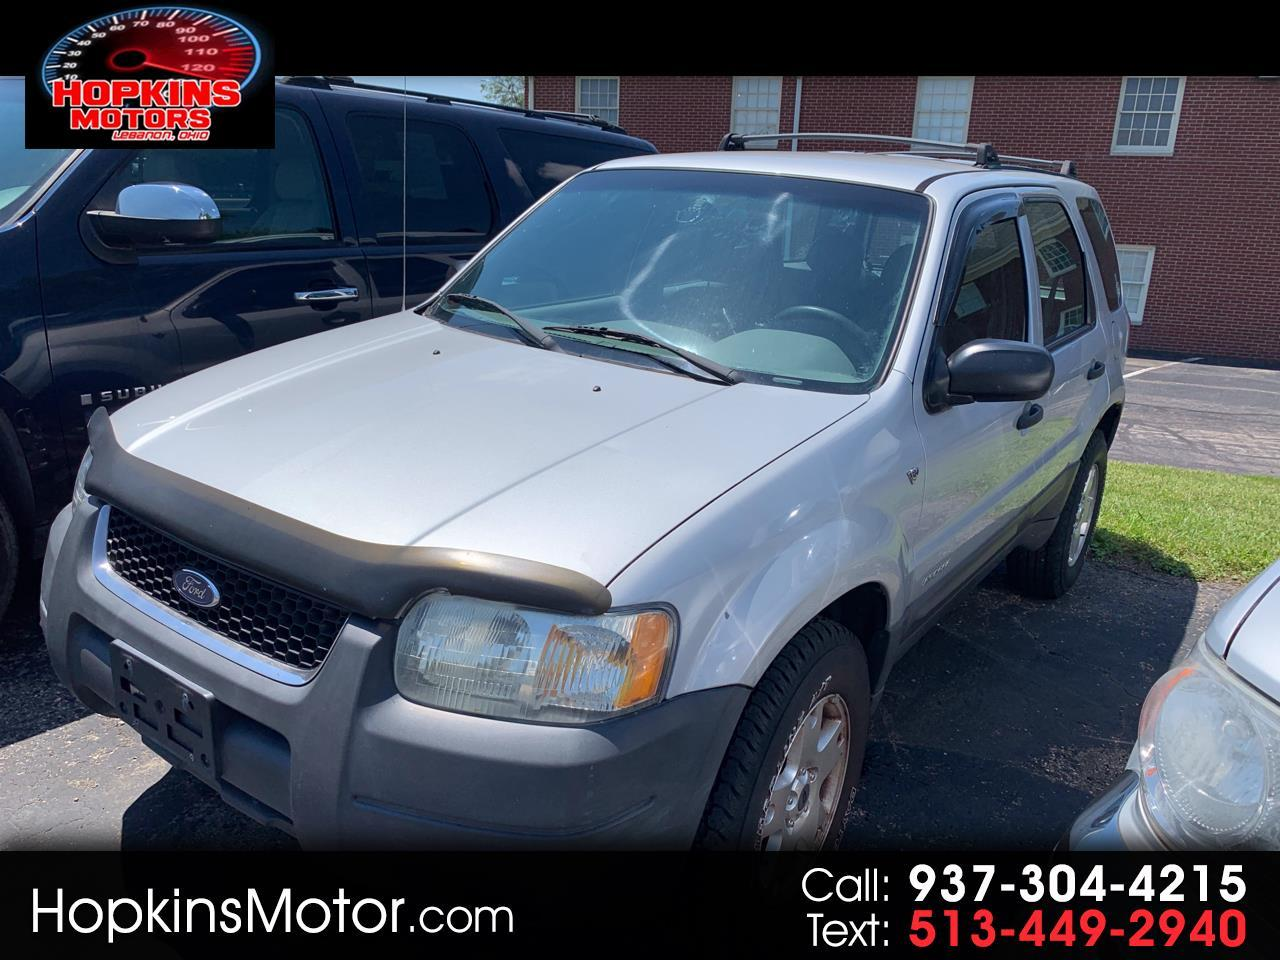 2002 Ford Escape $500